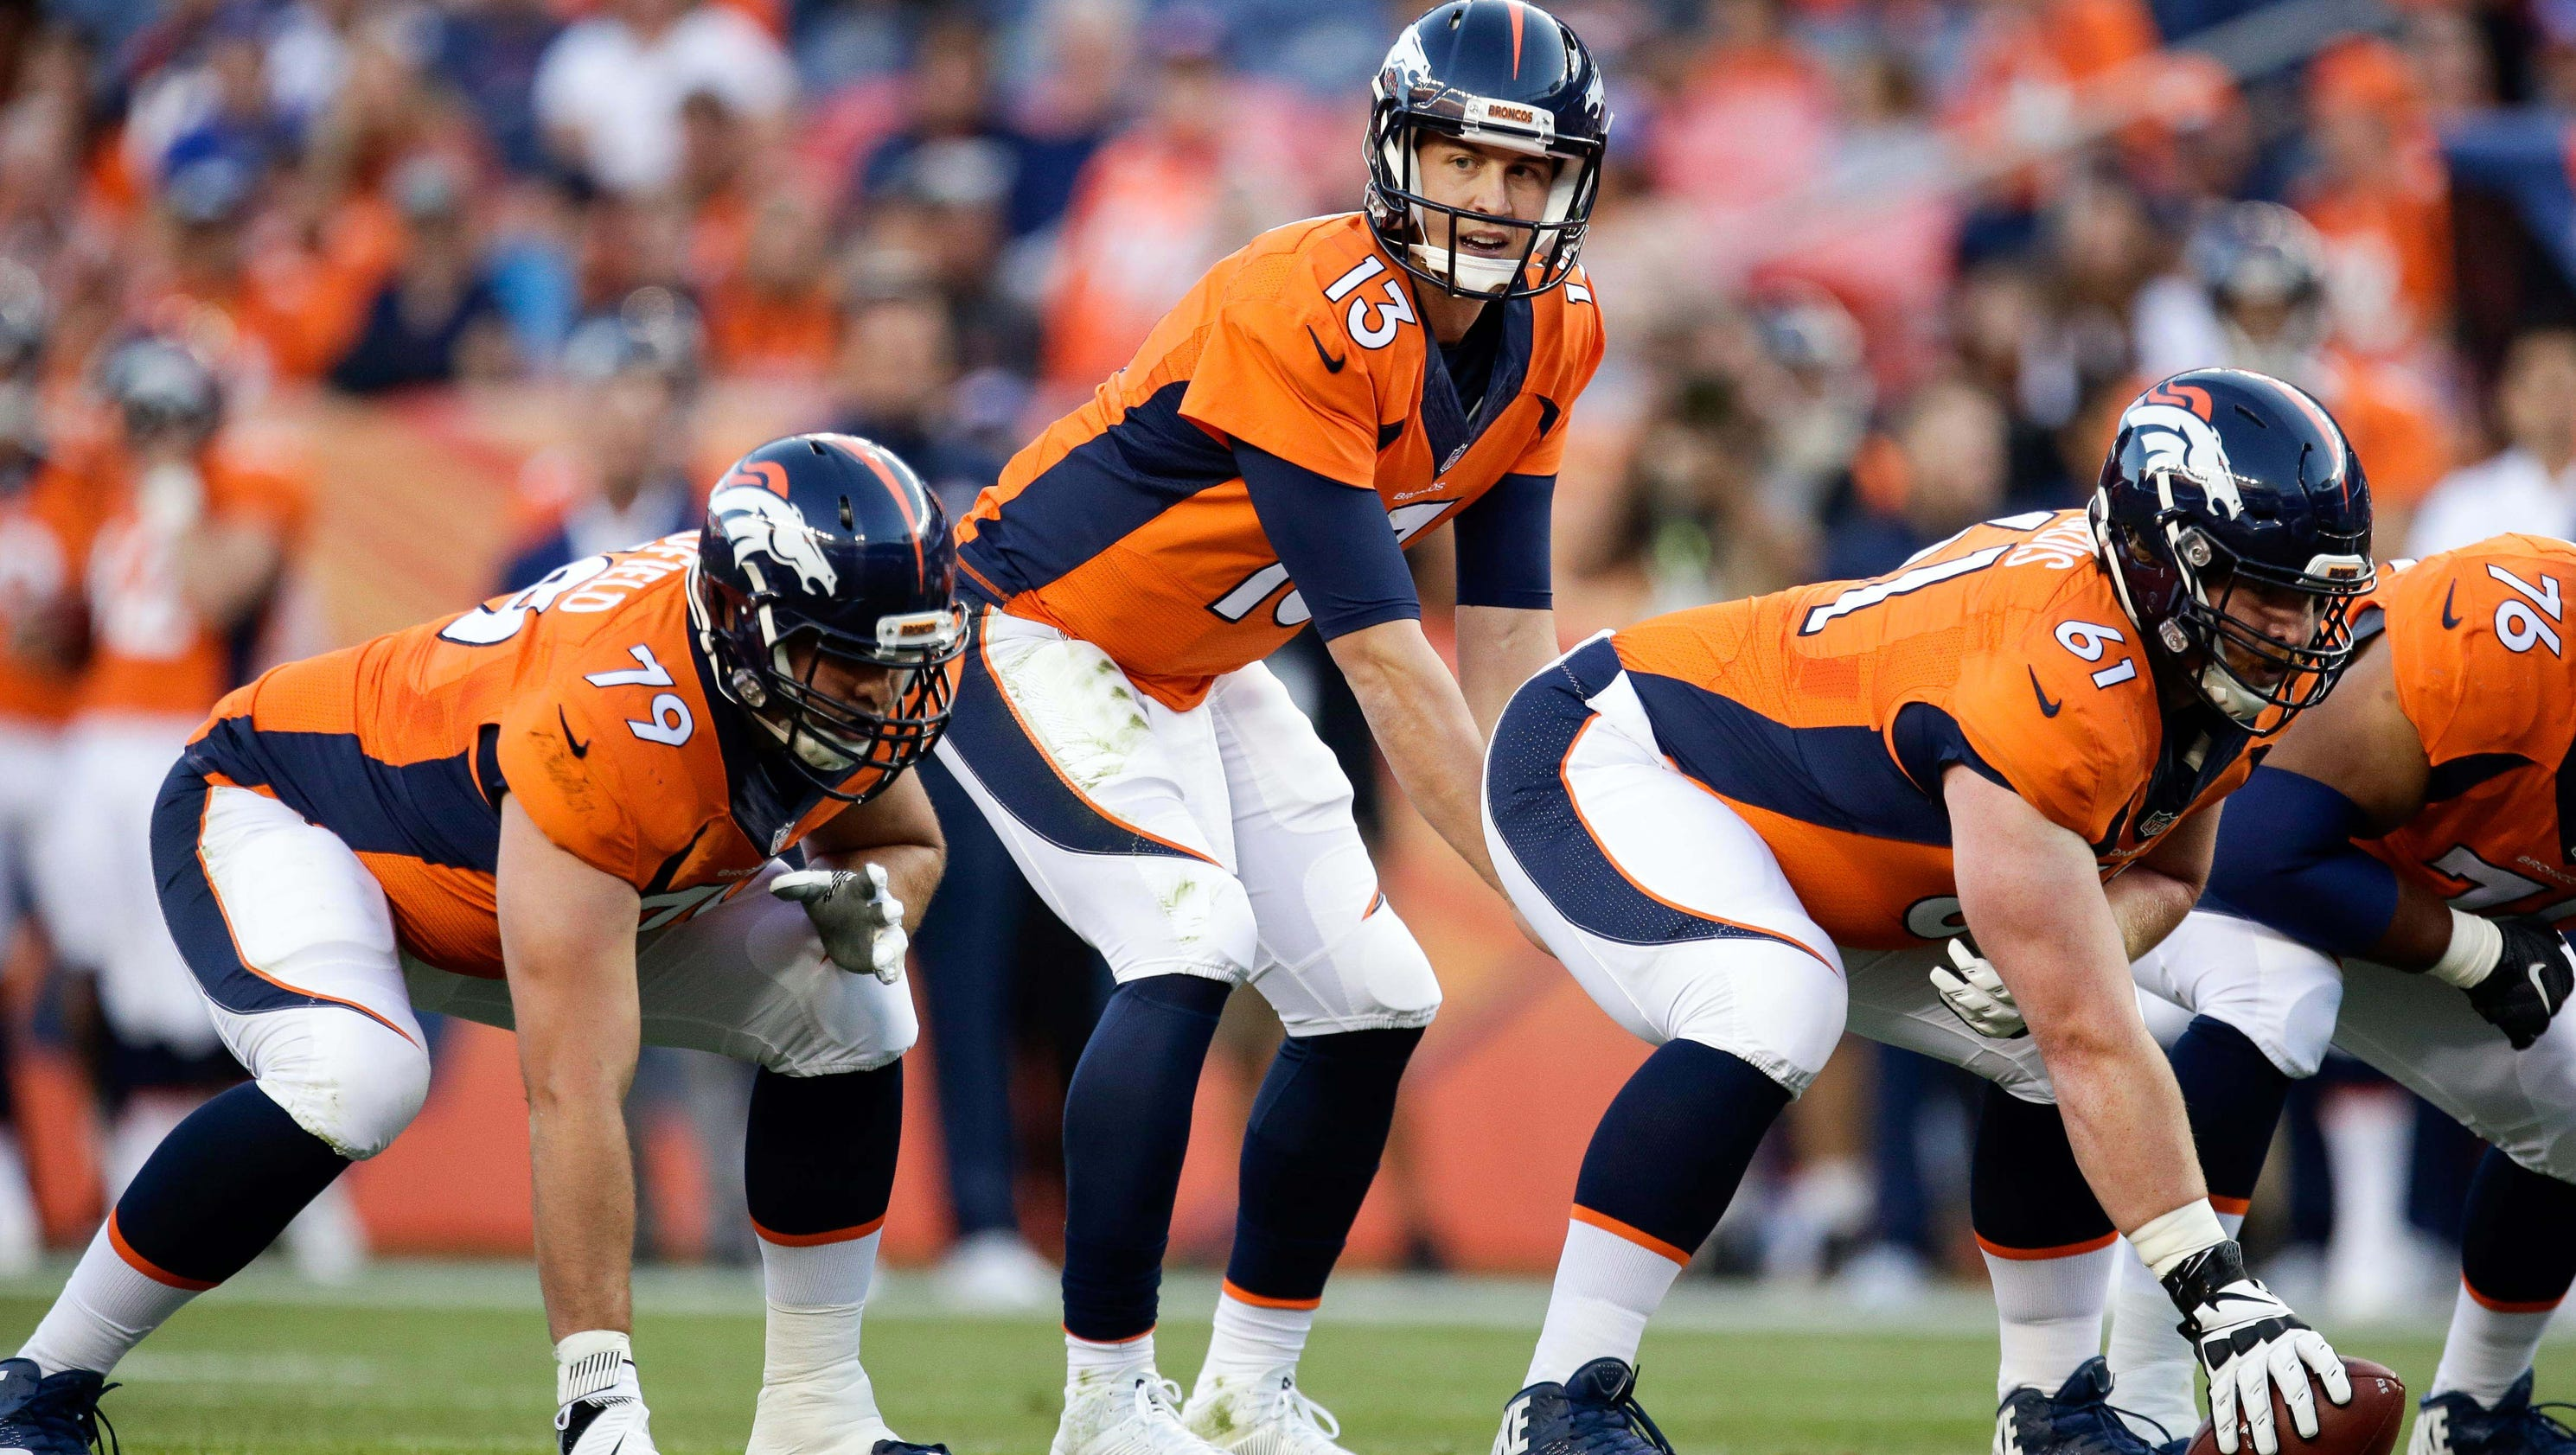 Broncos Qbs Siemian In Lead But Here Comes Lynch